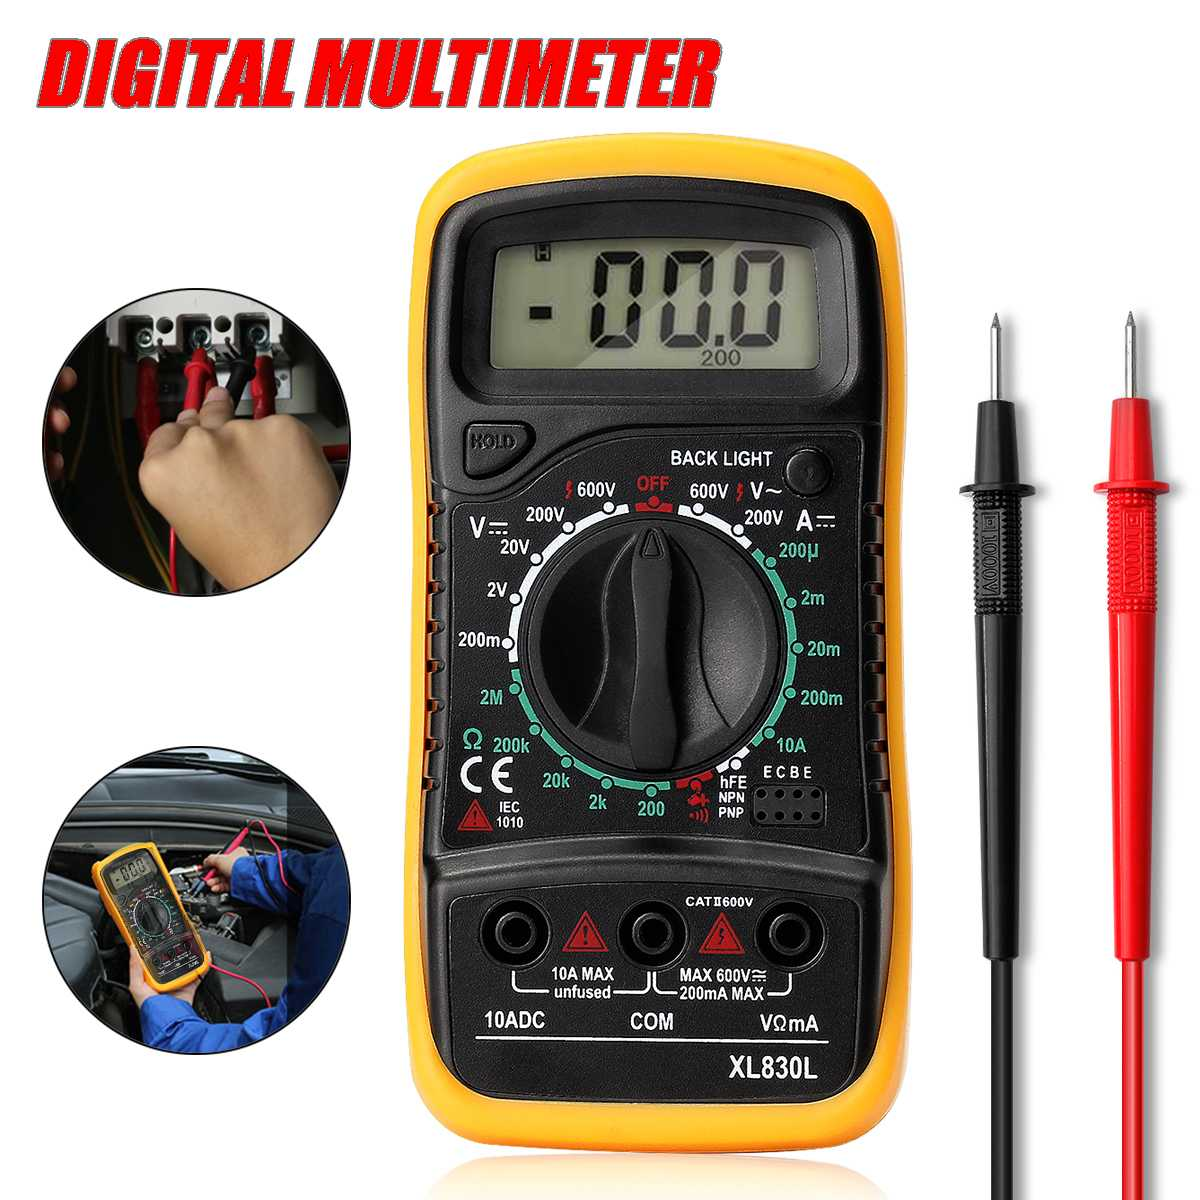 ZEAST Portable Electrical Digital Multimeter Backlight AC DC Ammeter Voltmeter Ohm Tester Meter Handheld LCD Voltmeter Volt